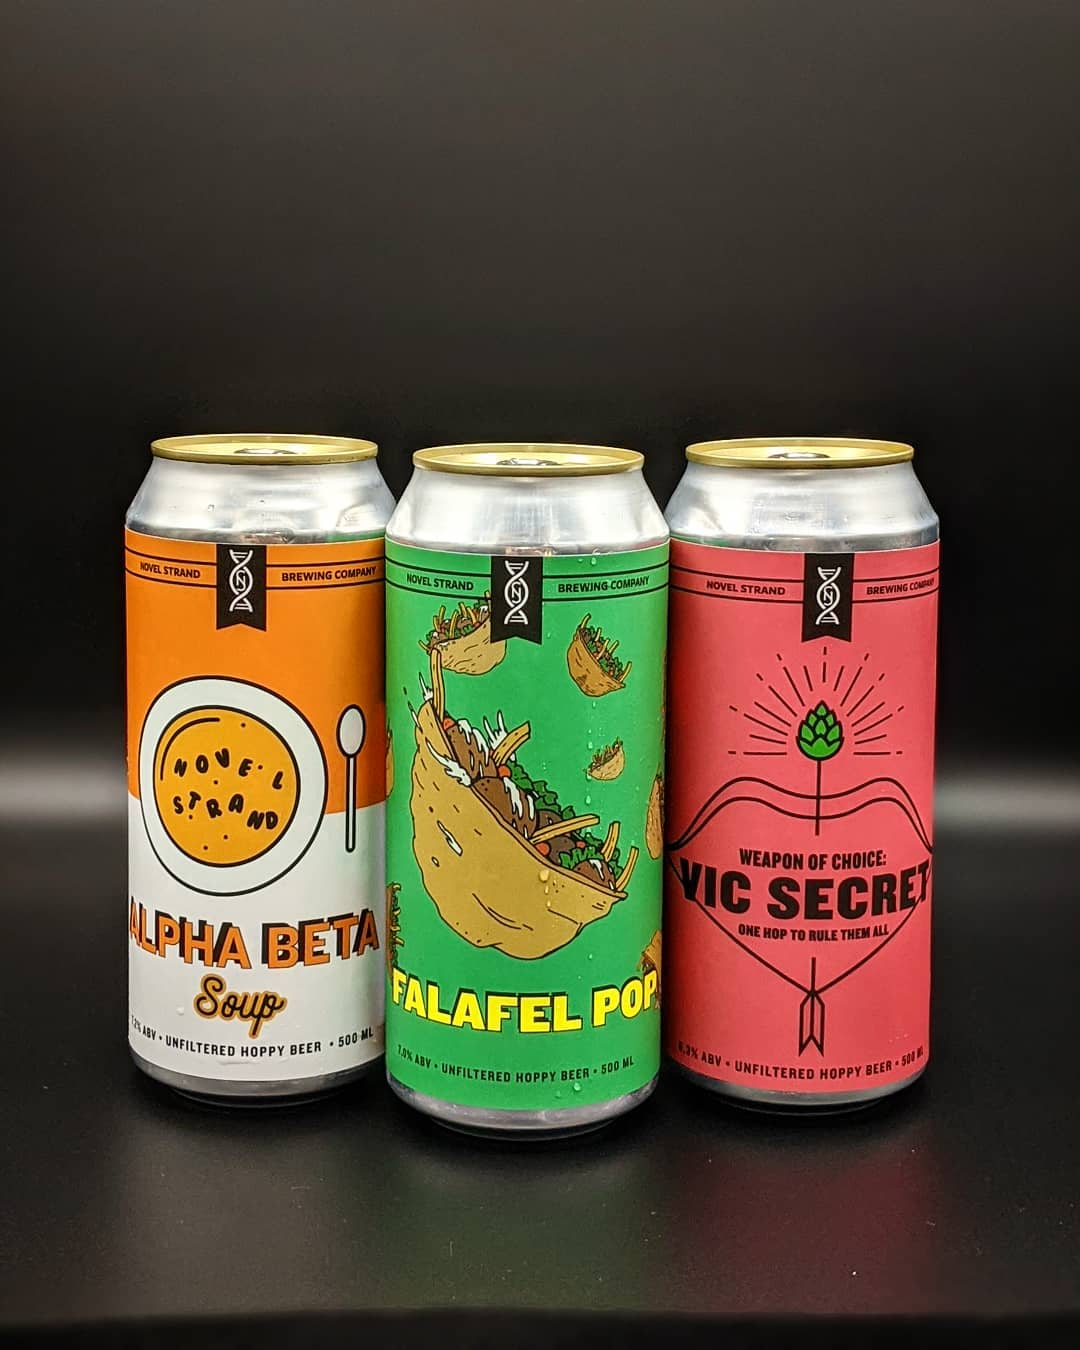 image of novel strand brewing beers